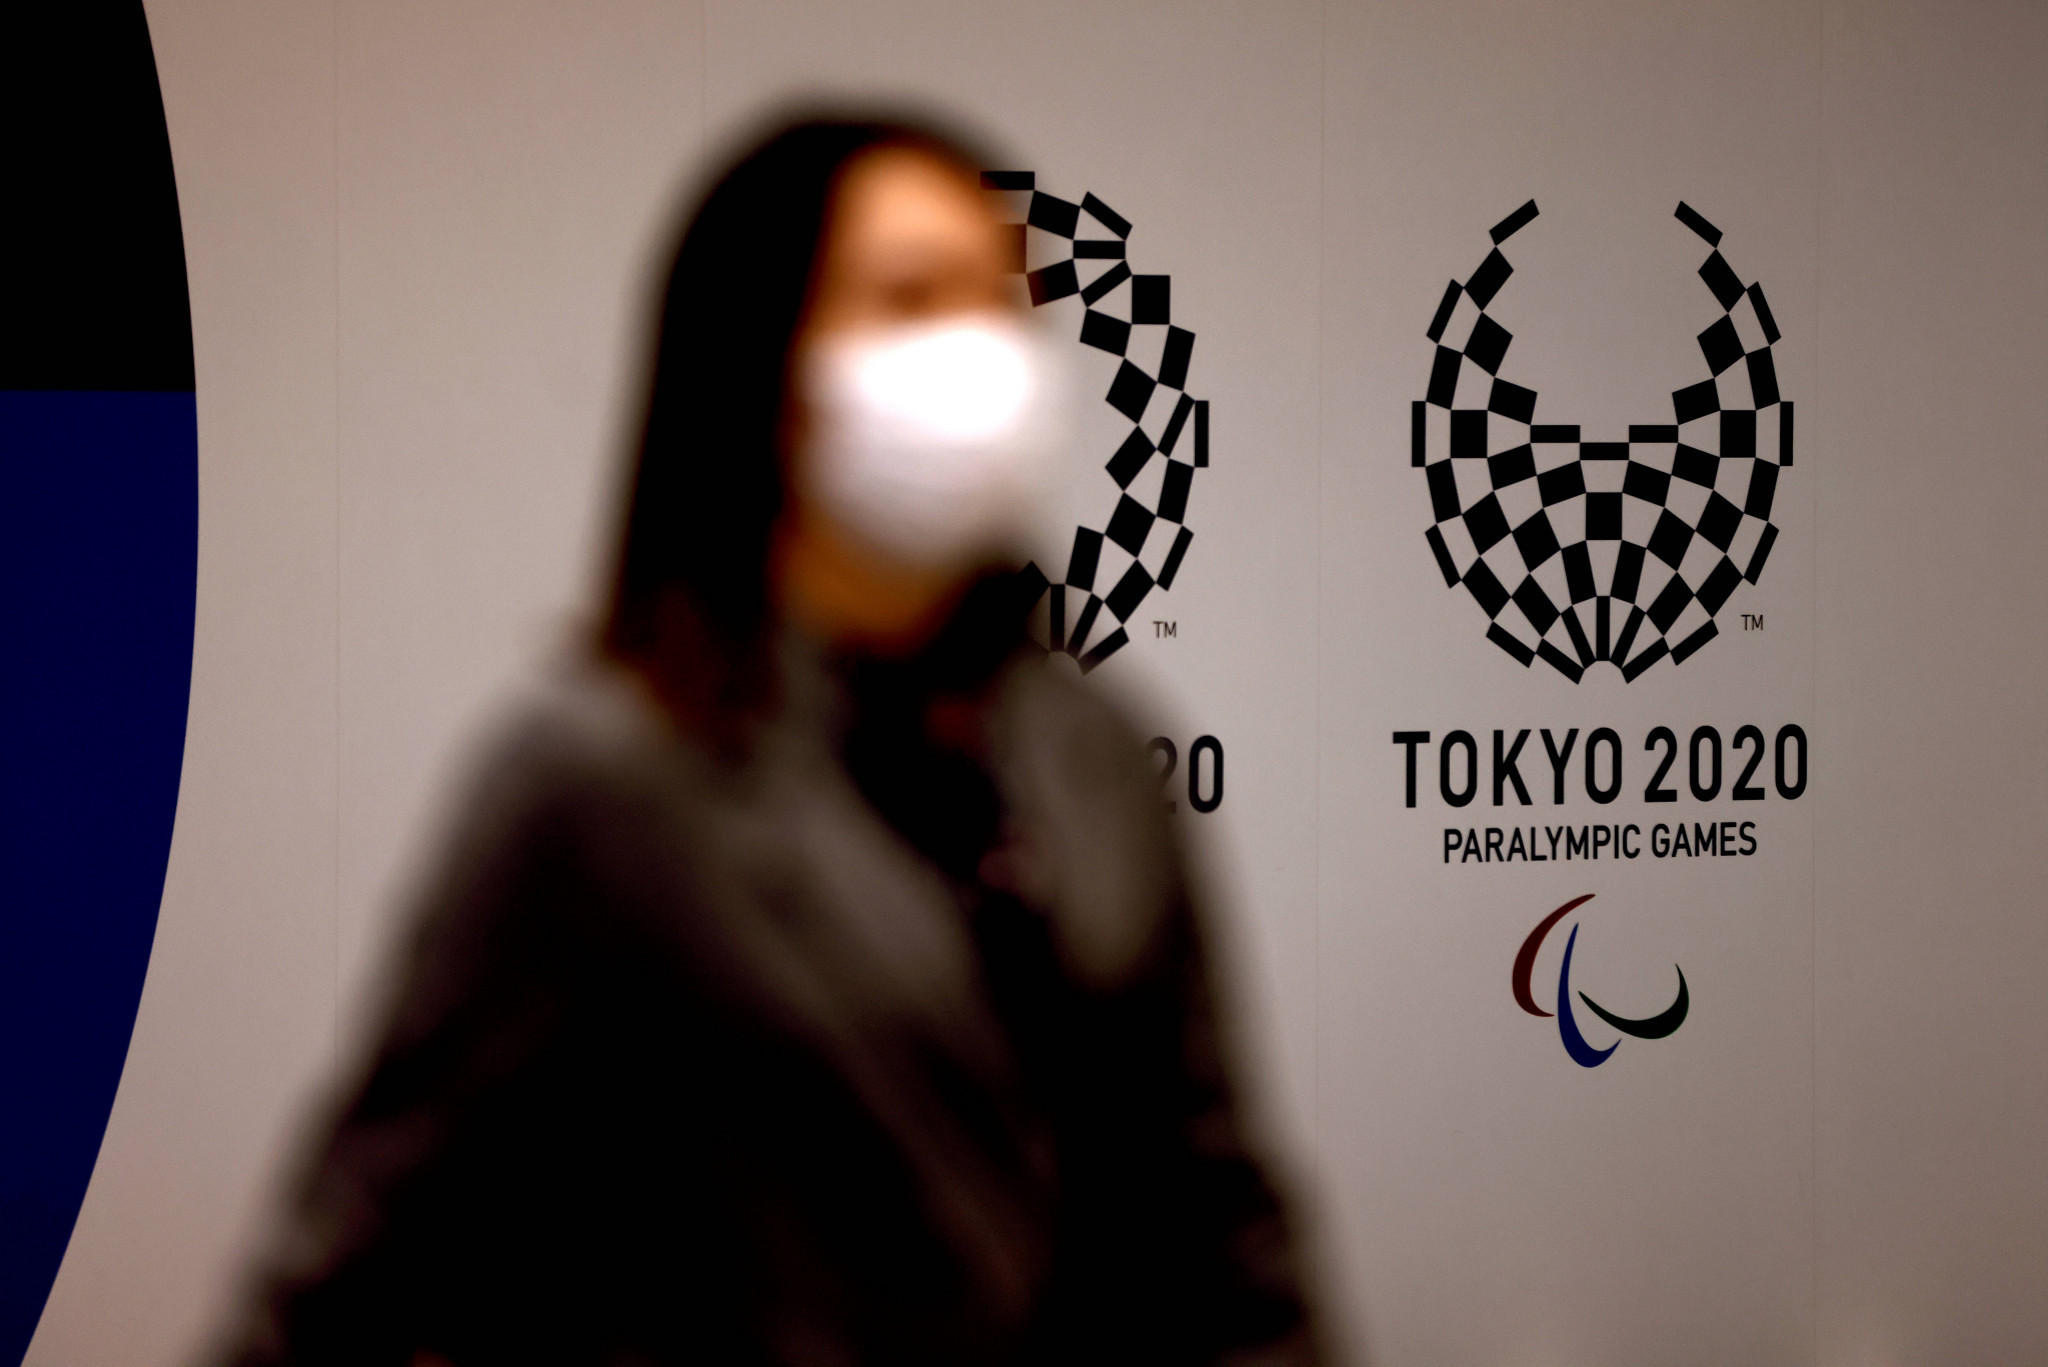 IPC says 62 per cent of Tokyo 2020 berths have been awarded